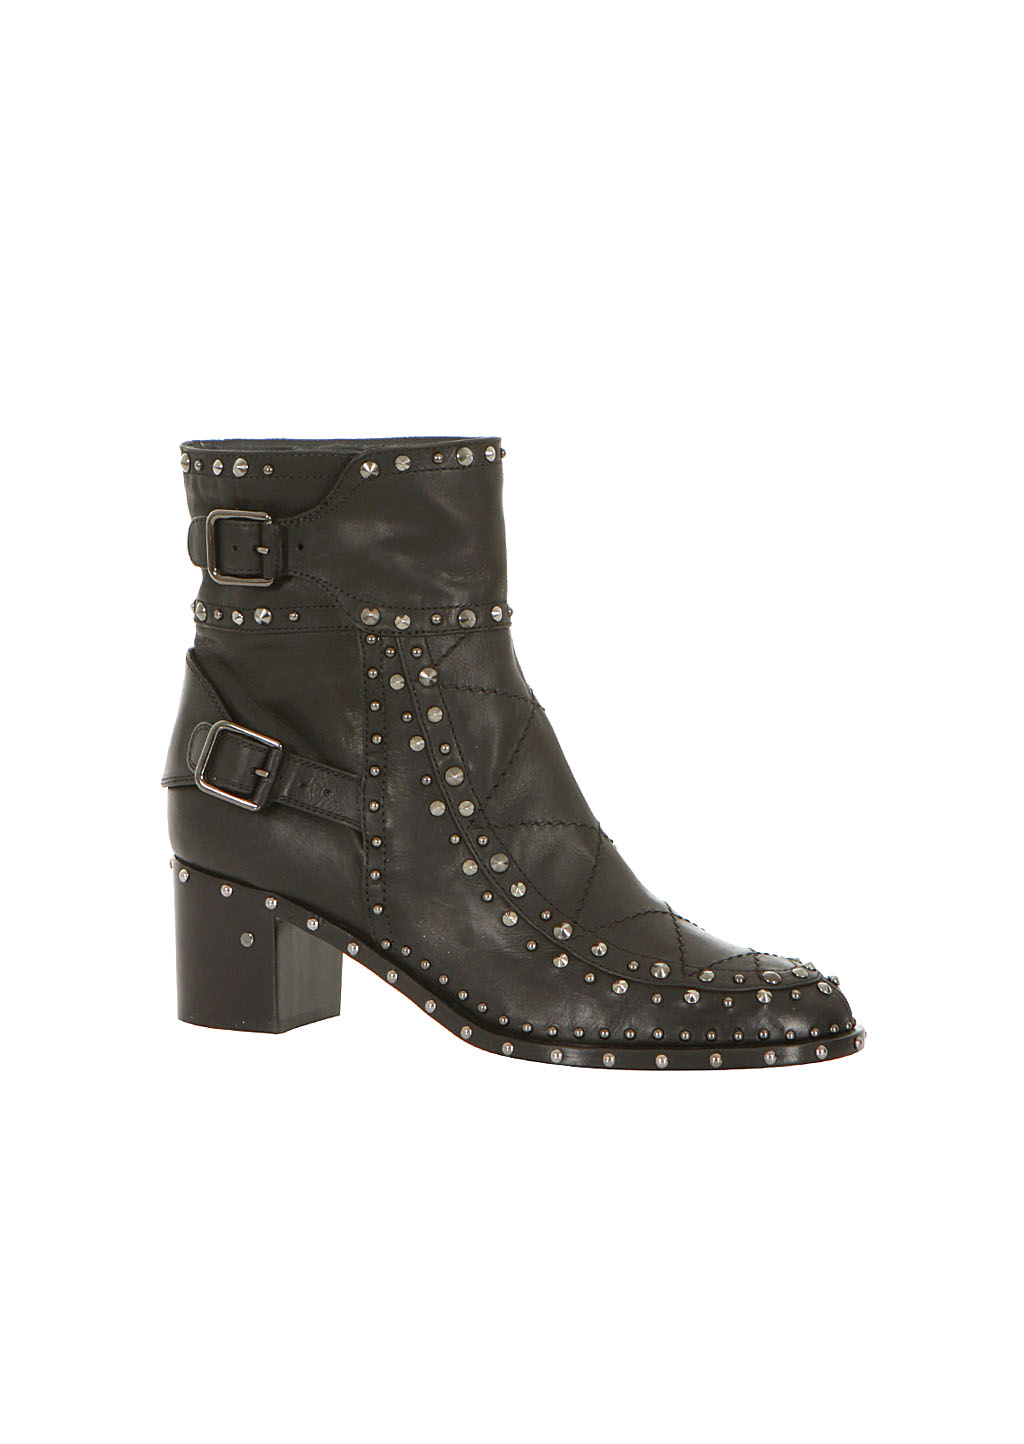 Laurence Dacade Black Leather Studded Badely Booties in ...